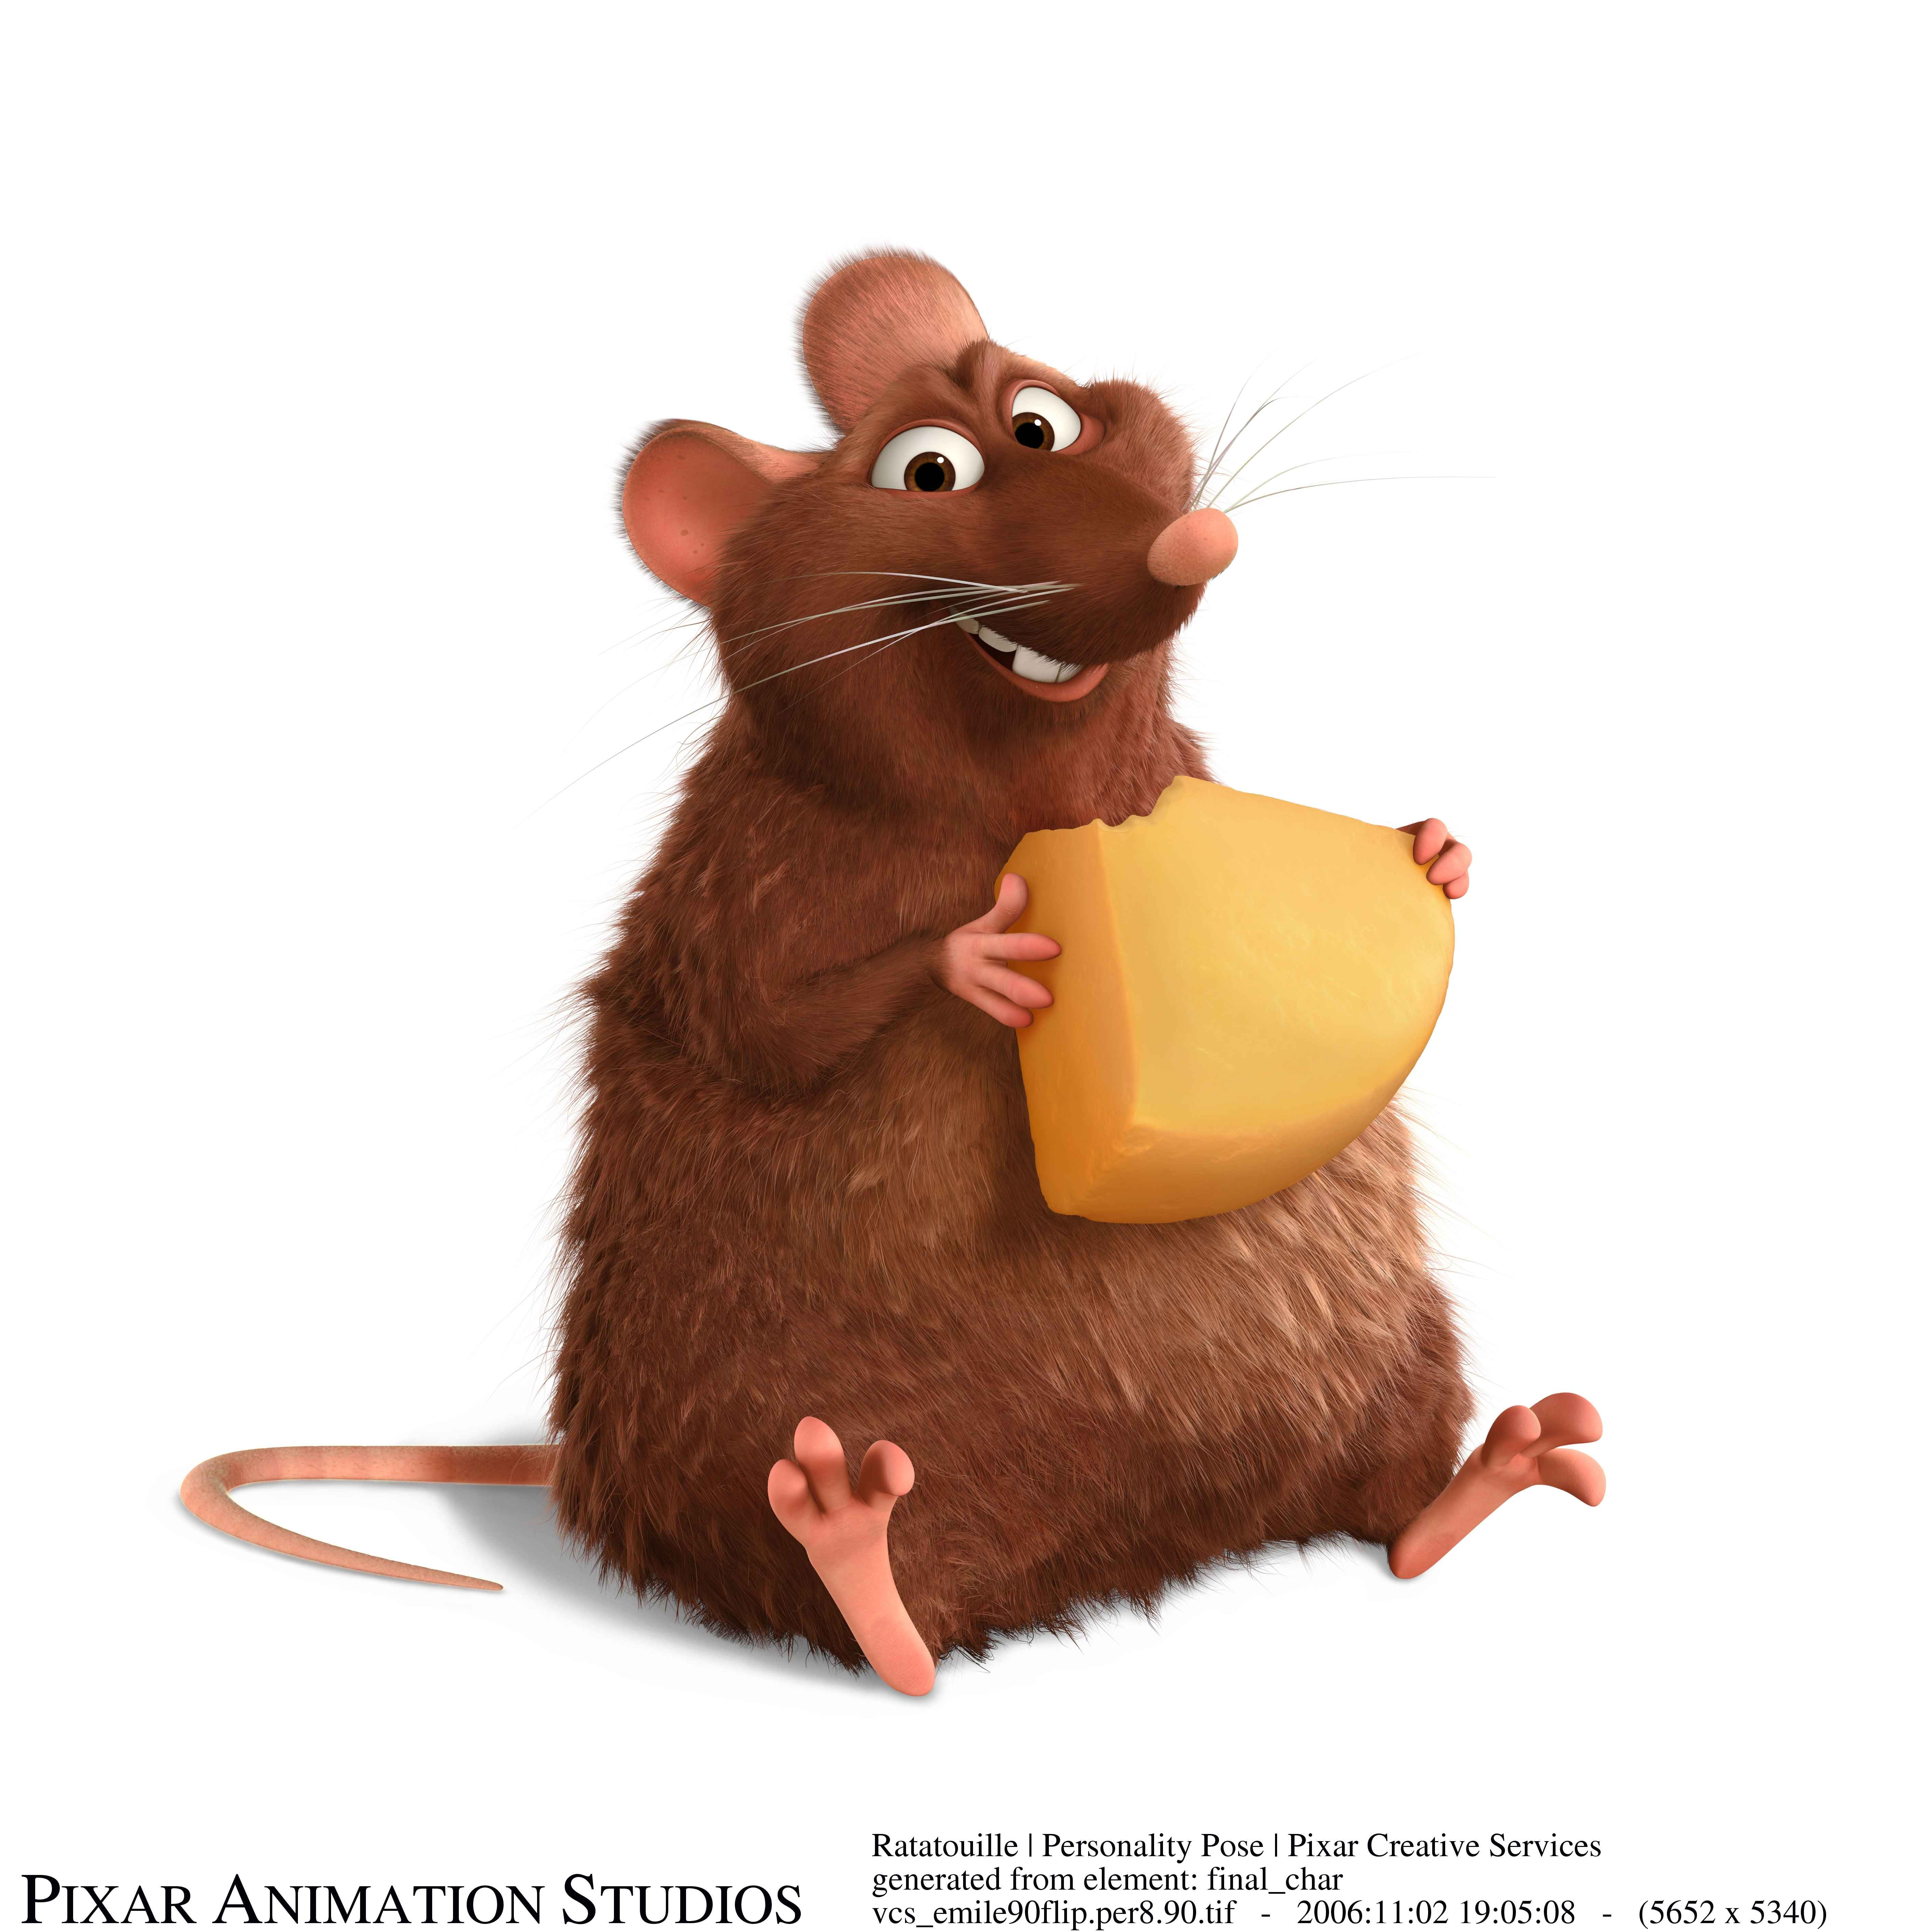 ratatouille images fat rat hd wallpaper and background photos 38584024